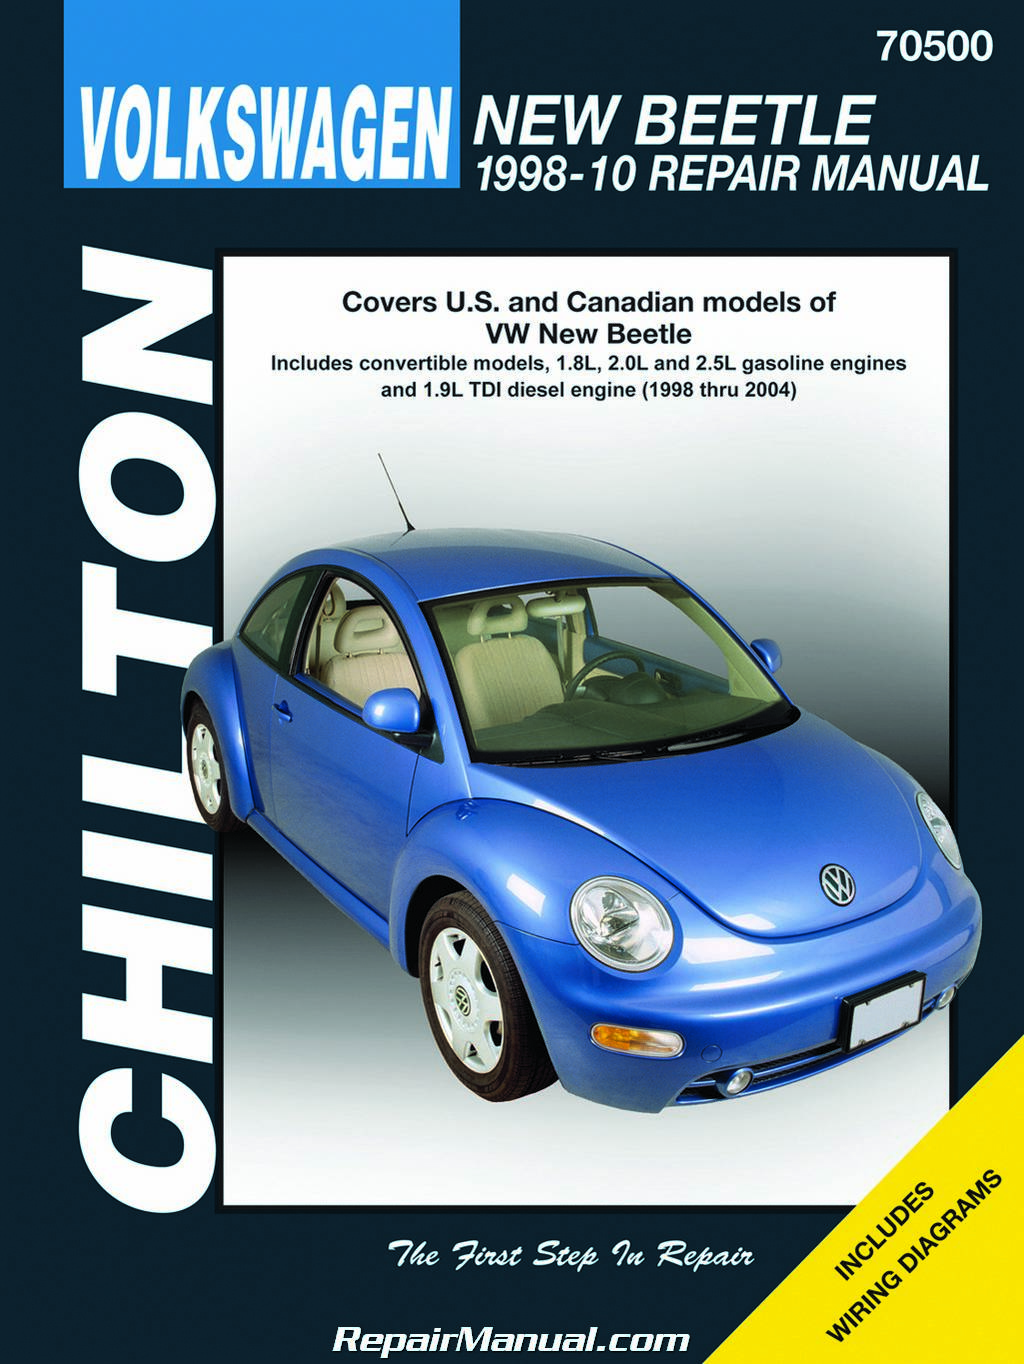 Chilton Volkswagen New Beetle 1998 2010 Repair Manual